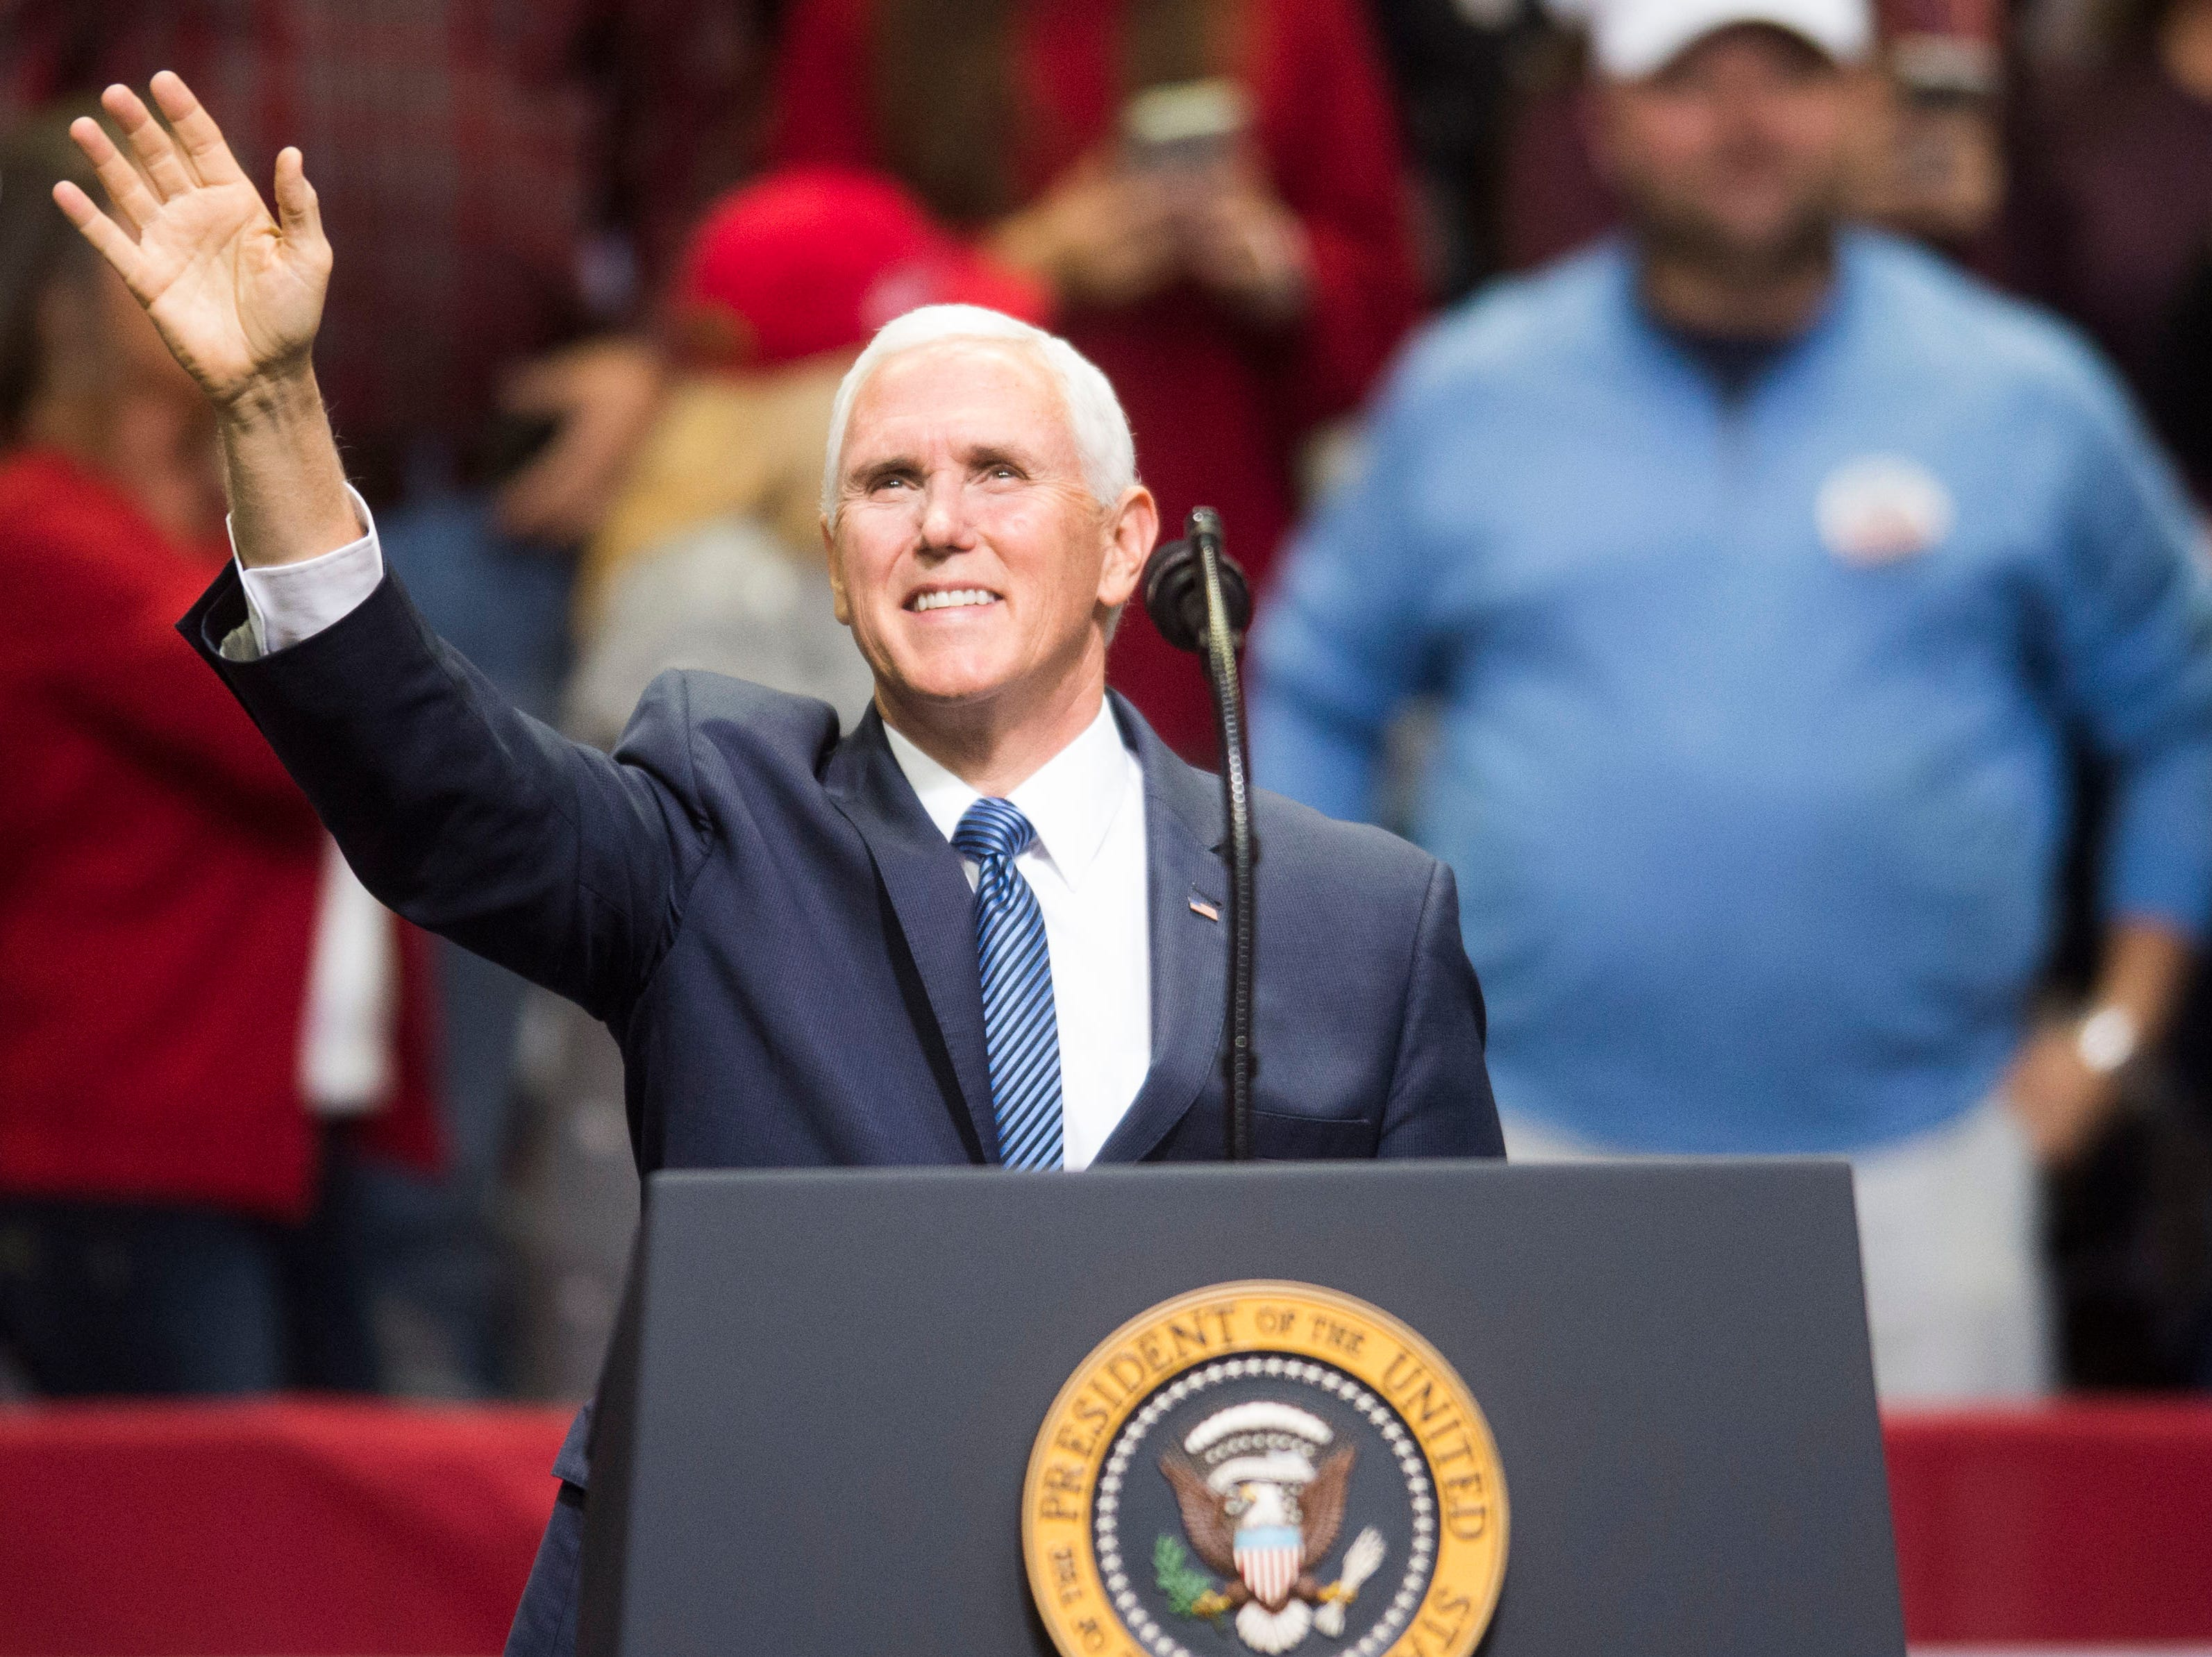 Vice President Mike Pence greets the crowd during a Donald Trump rally in support of U.S. Rep. Marsha Blackburn for the U.S. Senate at McKenzie Arena in Chattanooga, Sunday, Nov. 4, 2018.